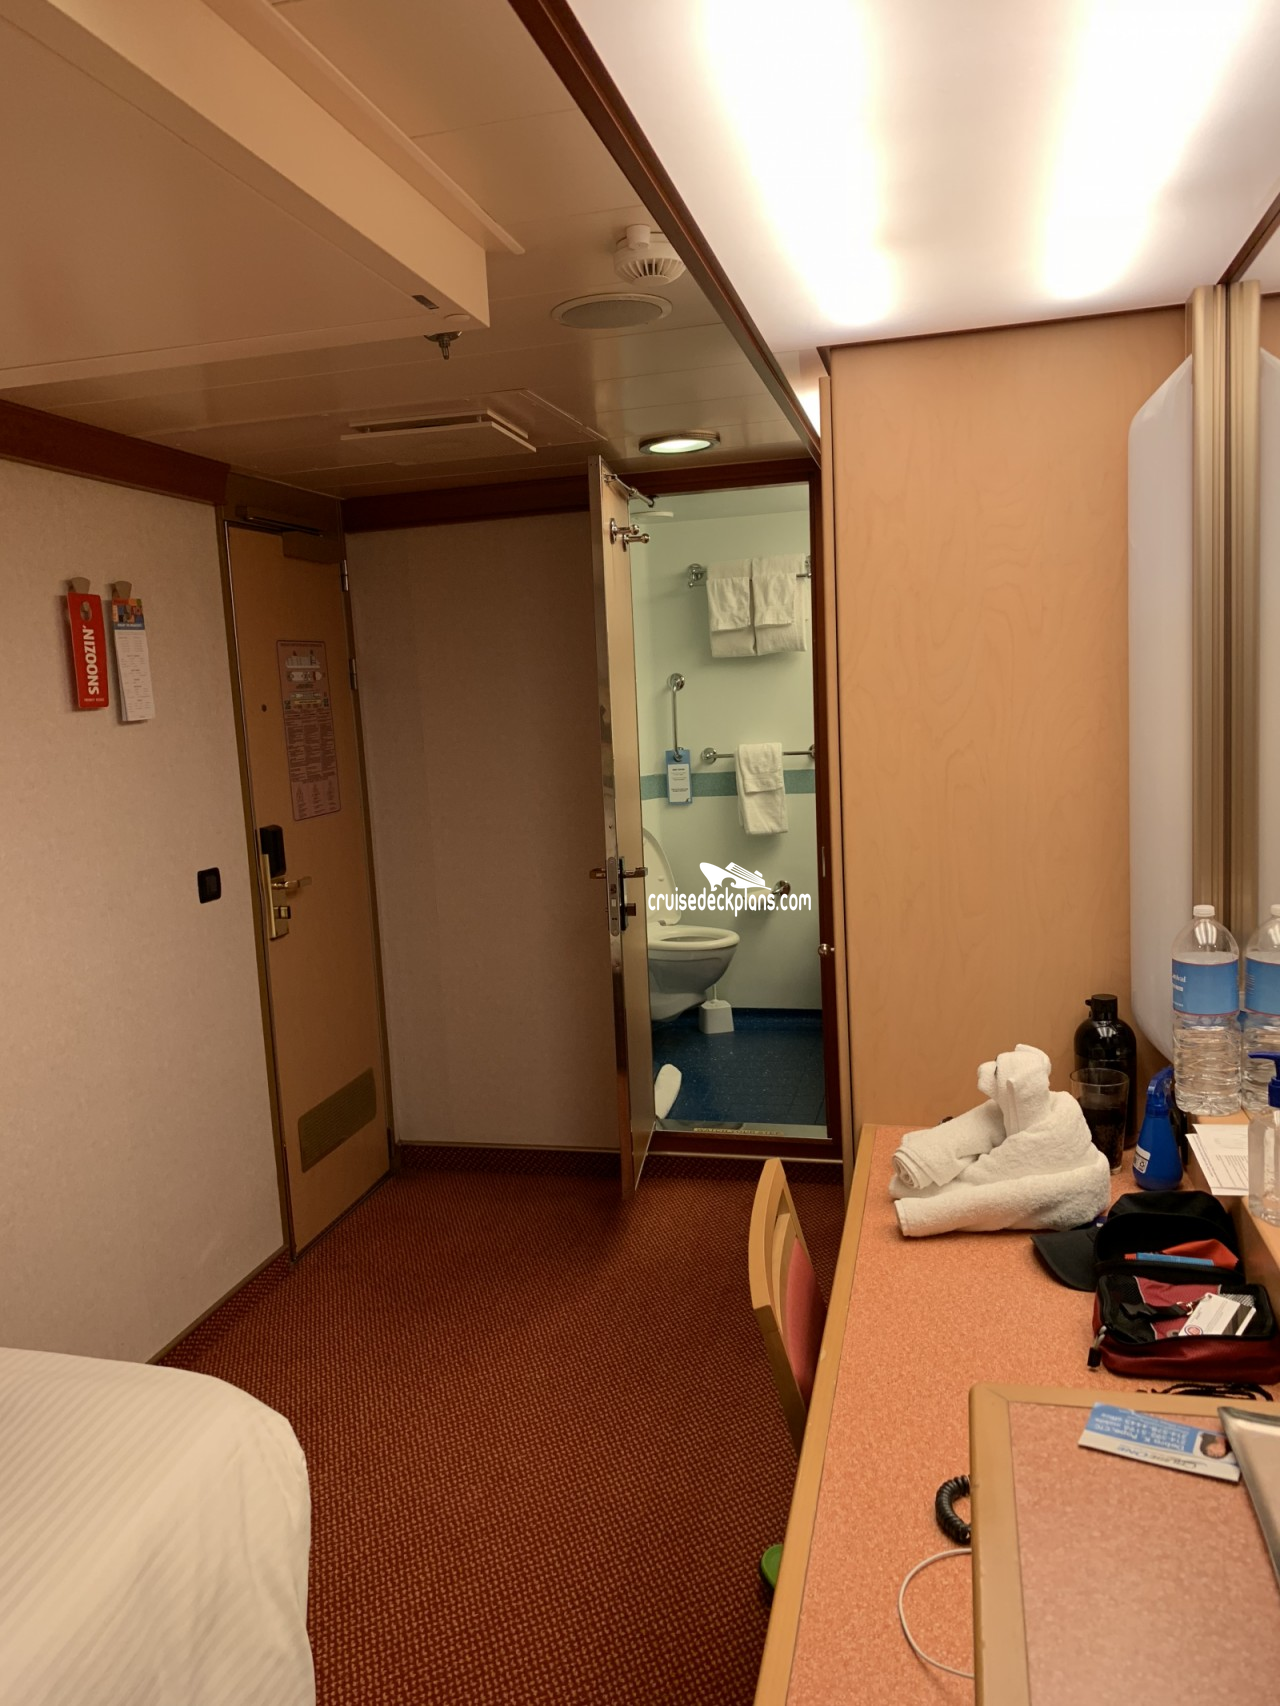 Carnival Splendor Small Interior Category